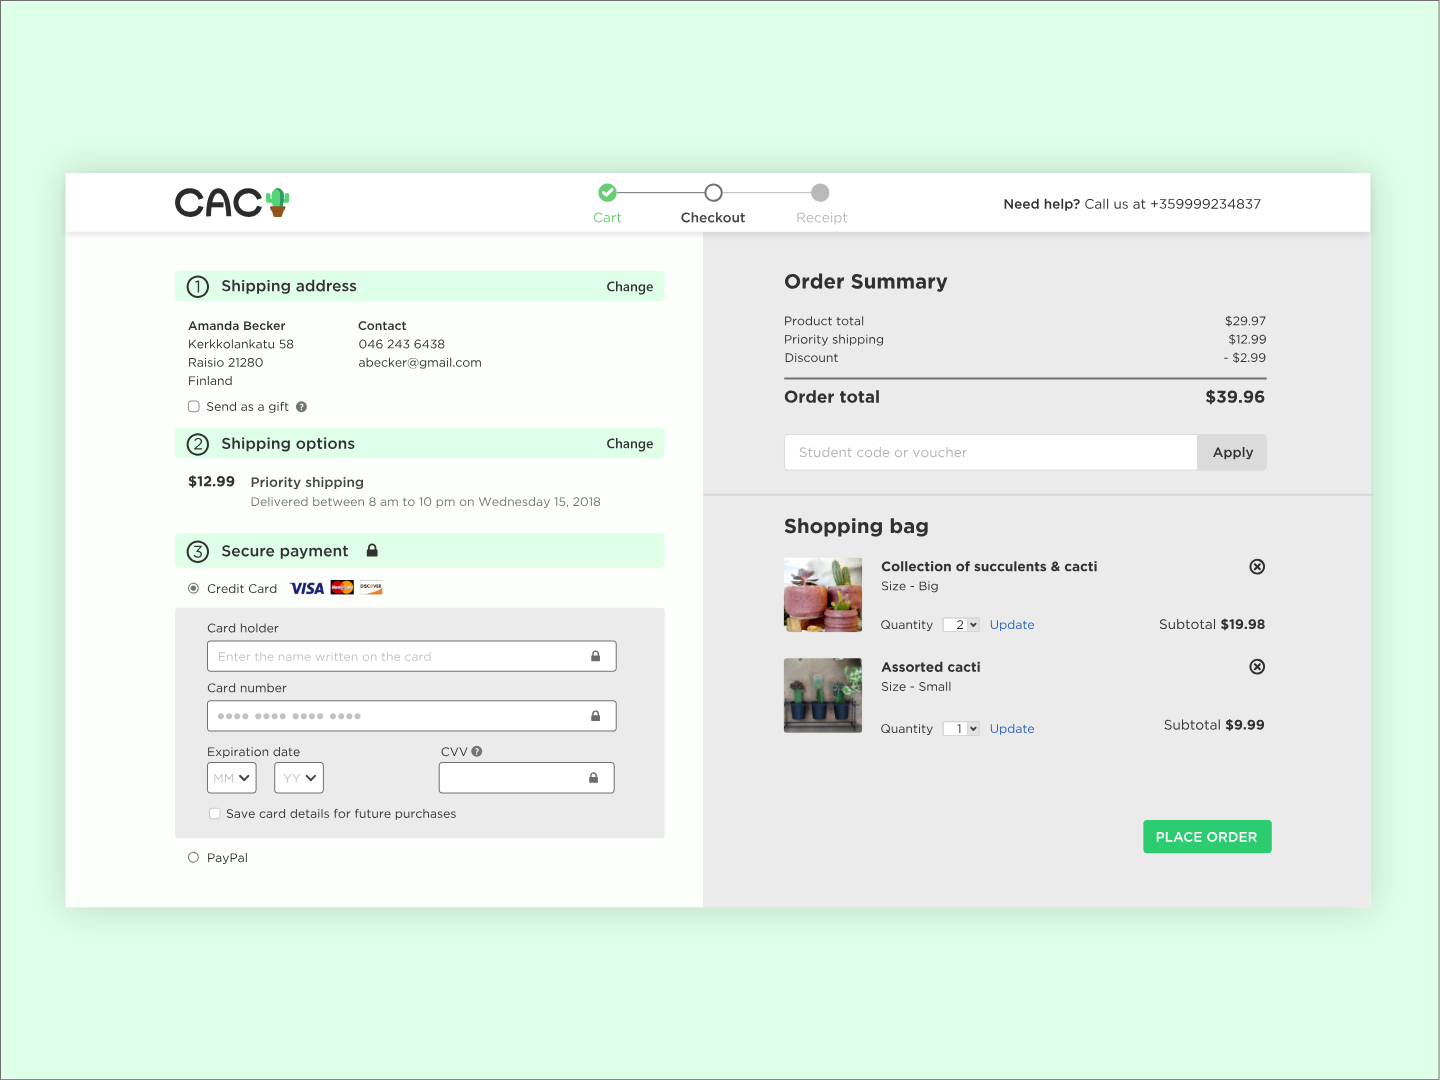 Daily UI #002 - Checkout gotham adobe xd credit card cart shop cacti cactus 002 challenge ui dailyui ecommerce shopping bag price order shipping payment checkout page checkout